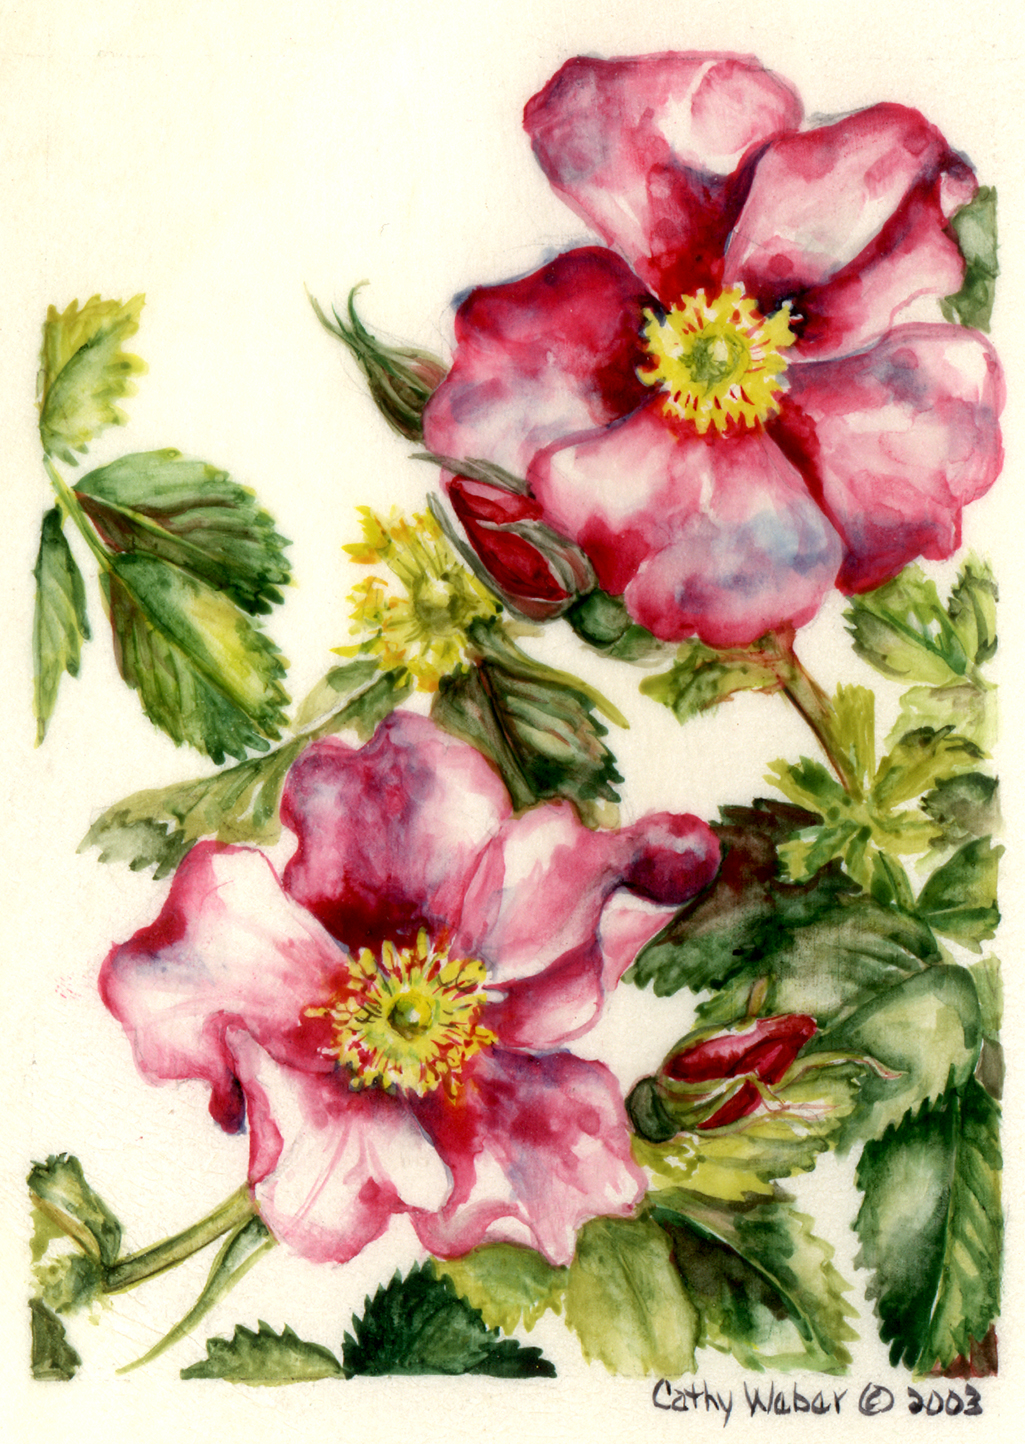 cathy weber - art - painting - woman -flowers - watercolor - moon phase- montana - painting - parchment - skin - botanical - study - wildflower - rosa woodsii